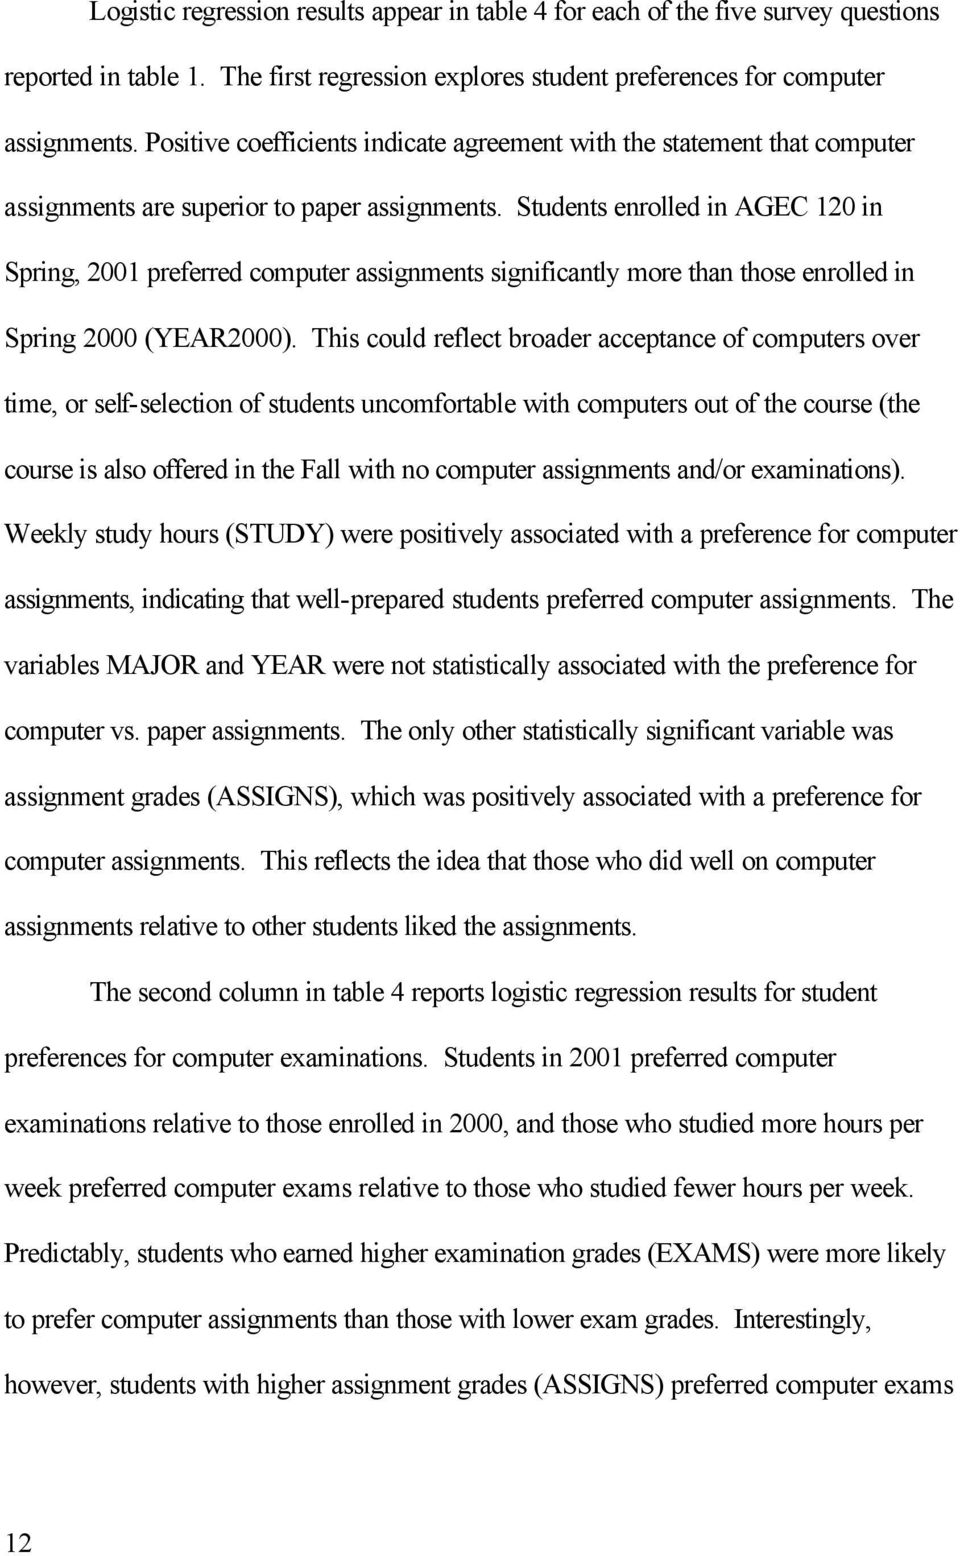 Students enrolled in AGEC 120 in Spring, 2001 preferred computer assignments significantly more than those enrolled in Spring 2000 (YEAR2000).